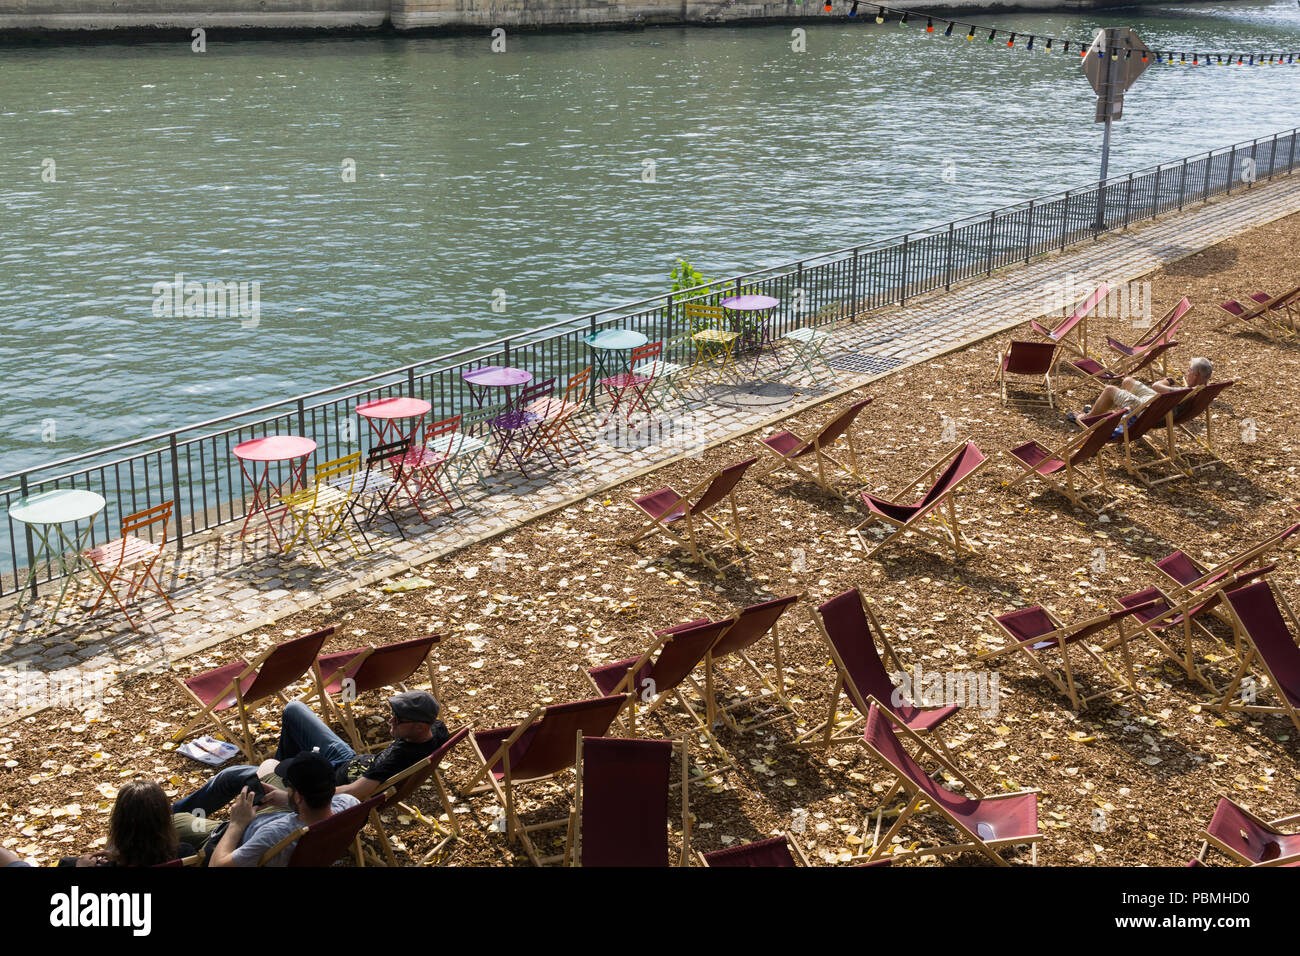 People enjoying the summer afternoon on the Seine River right bank, part of the Paris Plages event. France. - Stock Image